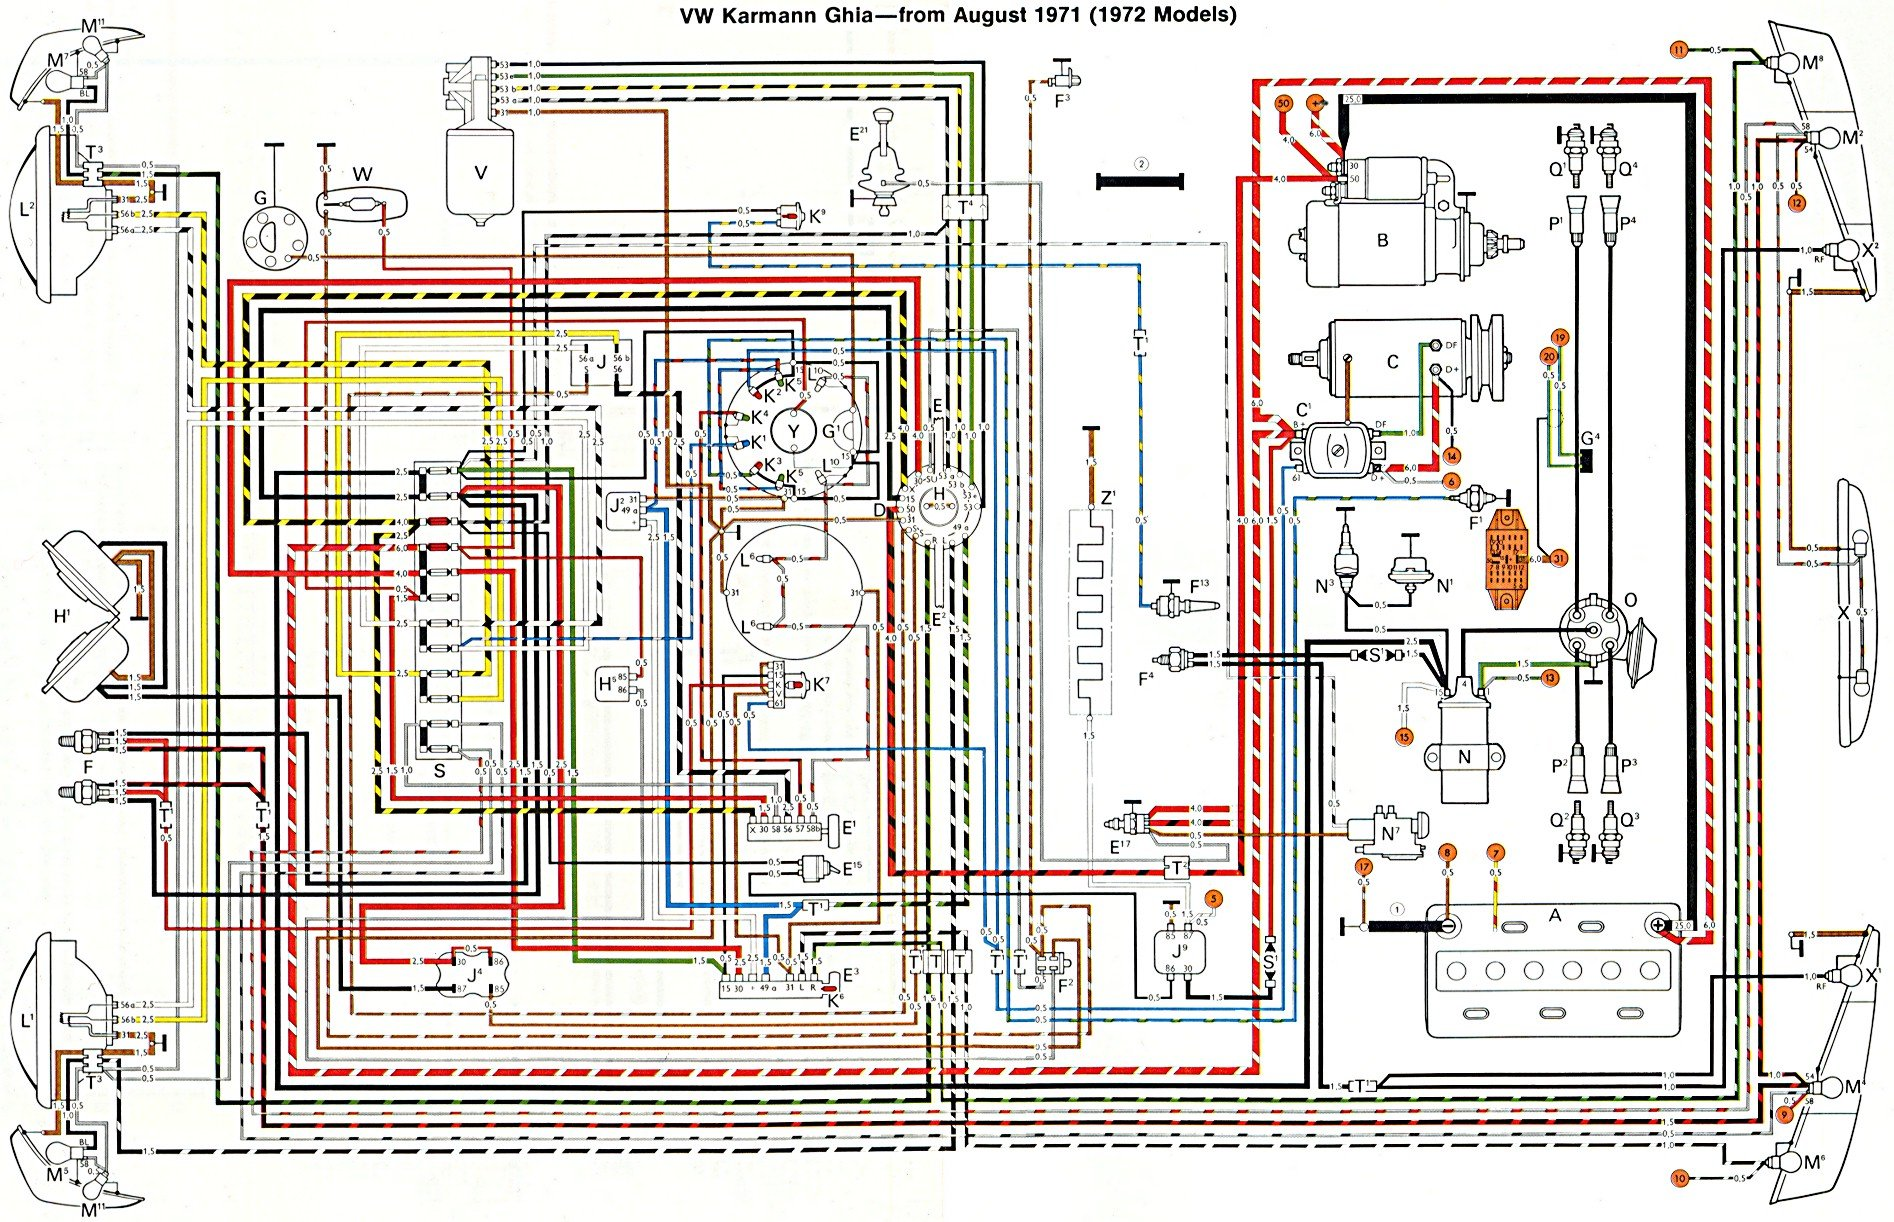 72ghia thesamba com karmann ghia wiring diagrams 1965 vw bus wiring harness at alyssarenee.co